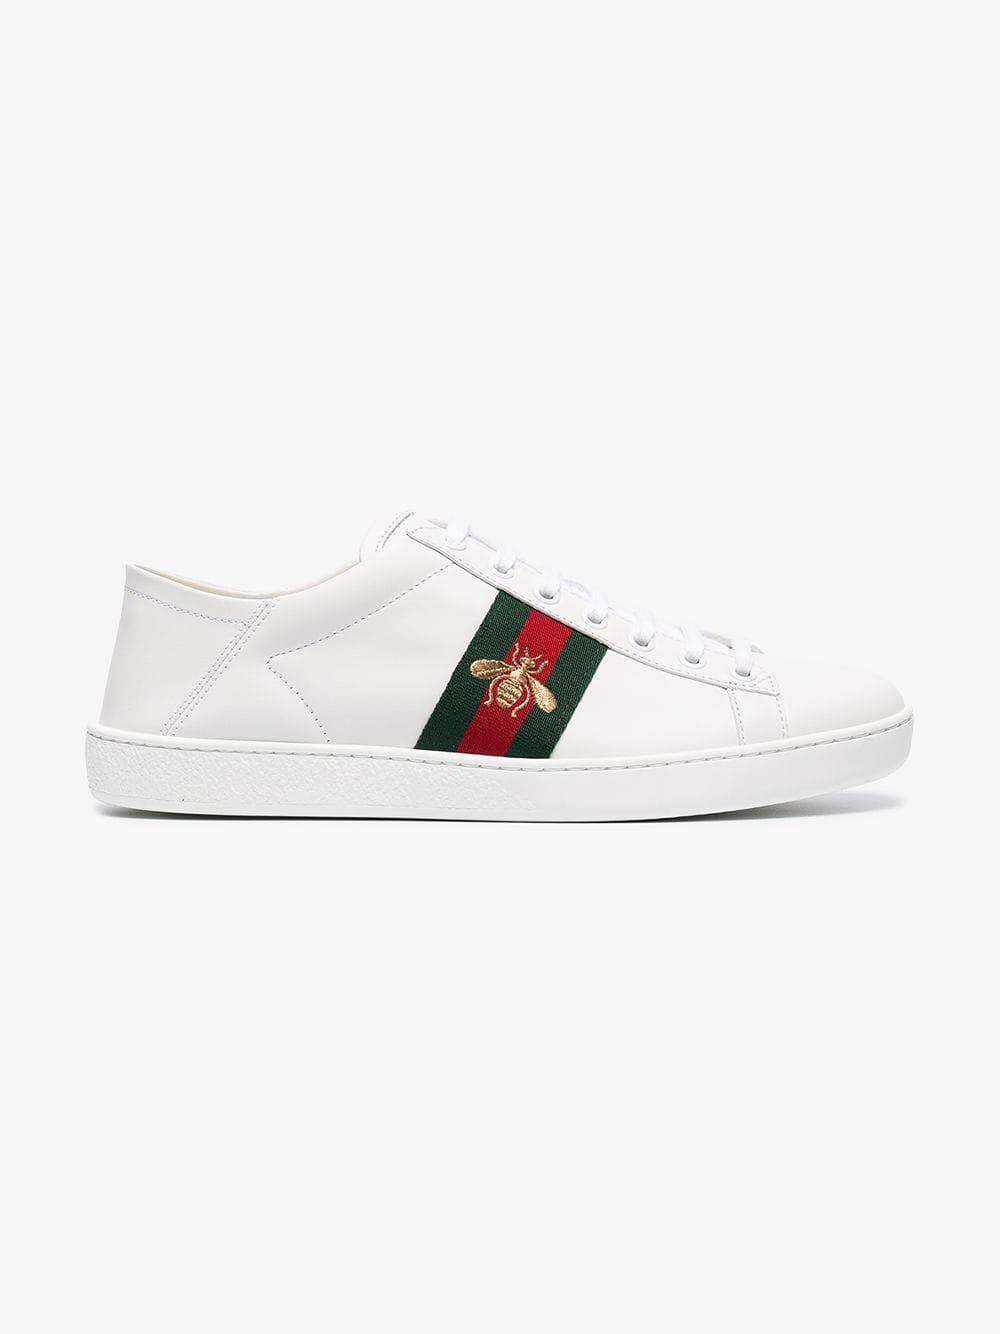 62c65743dd3 Lyst - Gucci White Ace Leather Sneakers in White